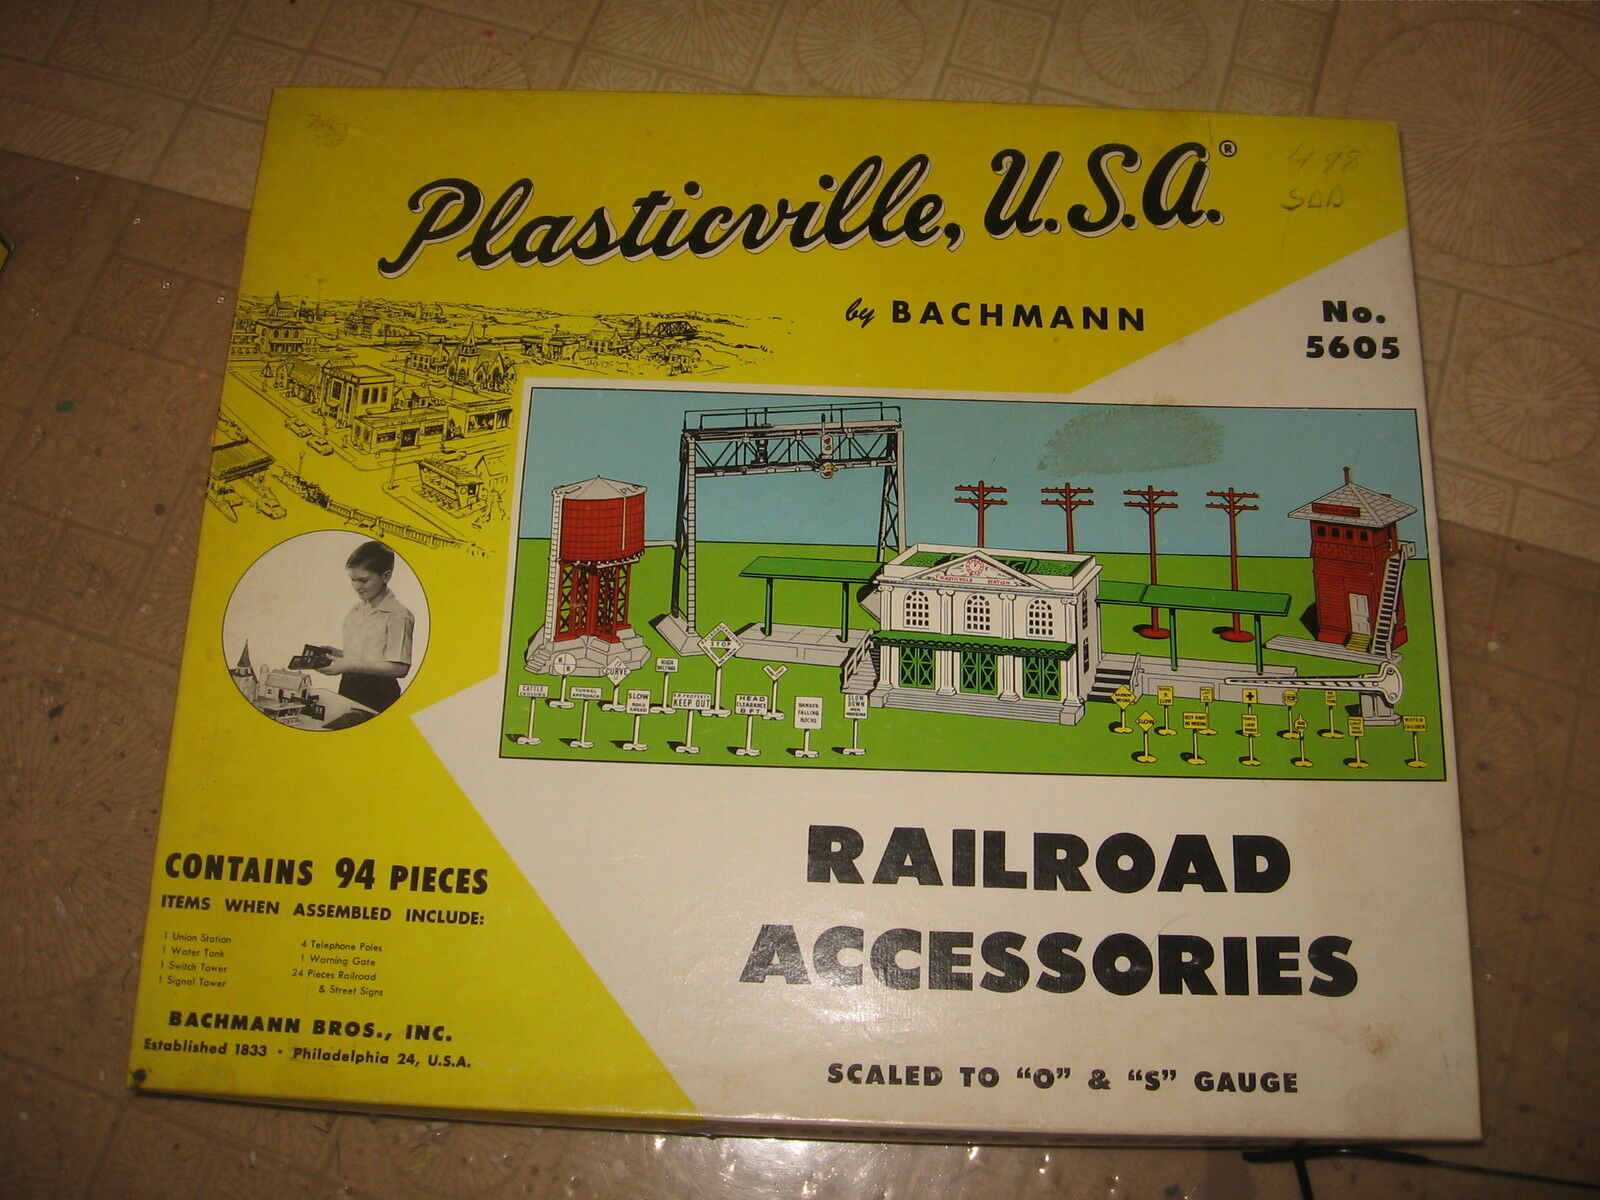 PLASTICVILLE U.S.A RAILROAD ACCESSORIES MASTER SET